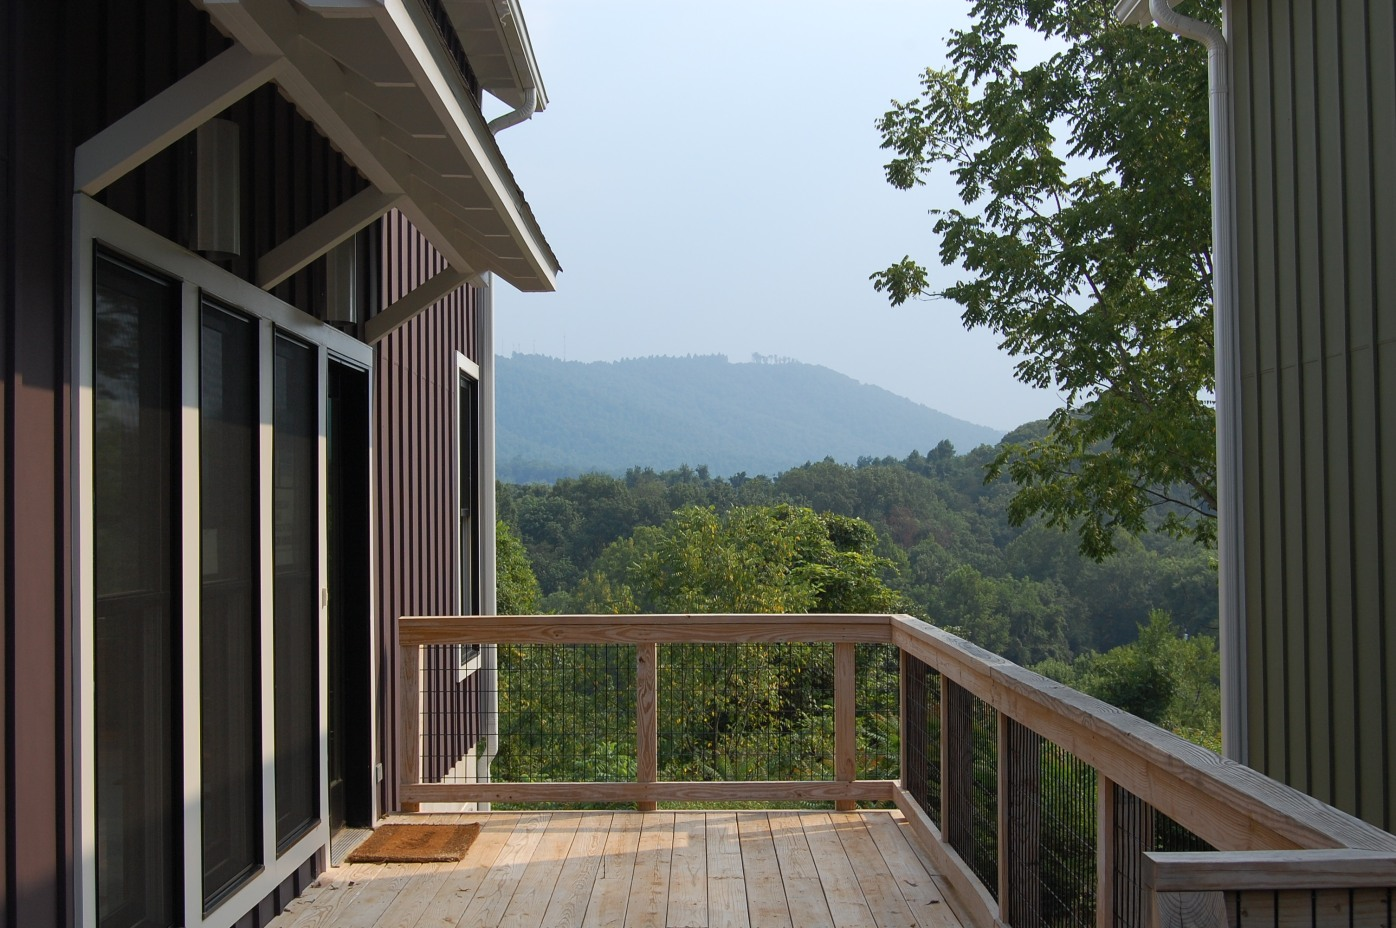 entry deck to one of the homes